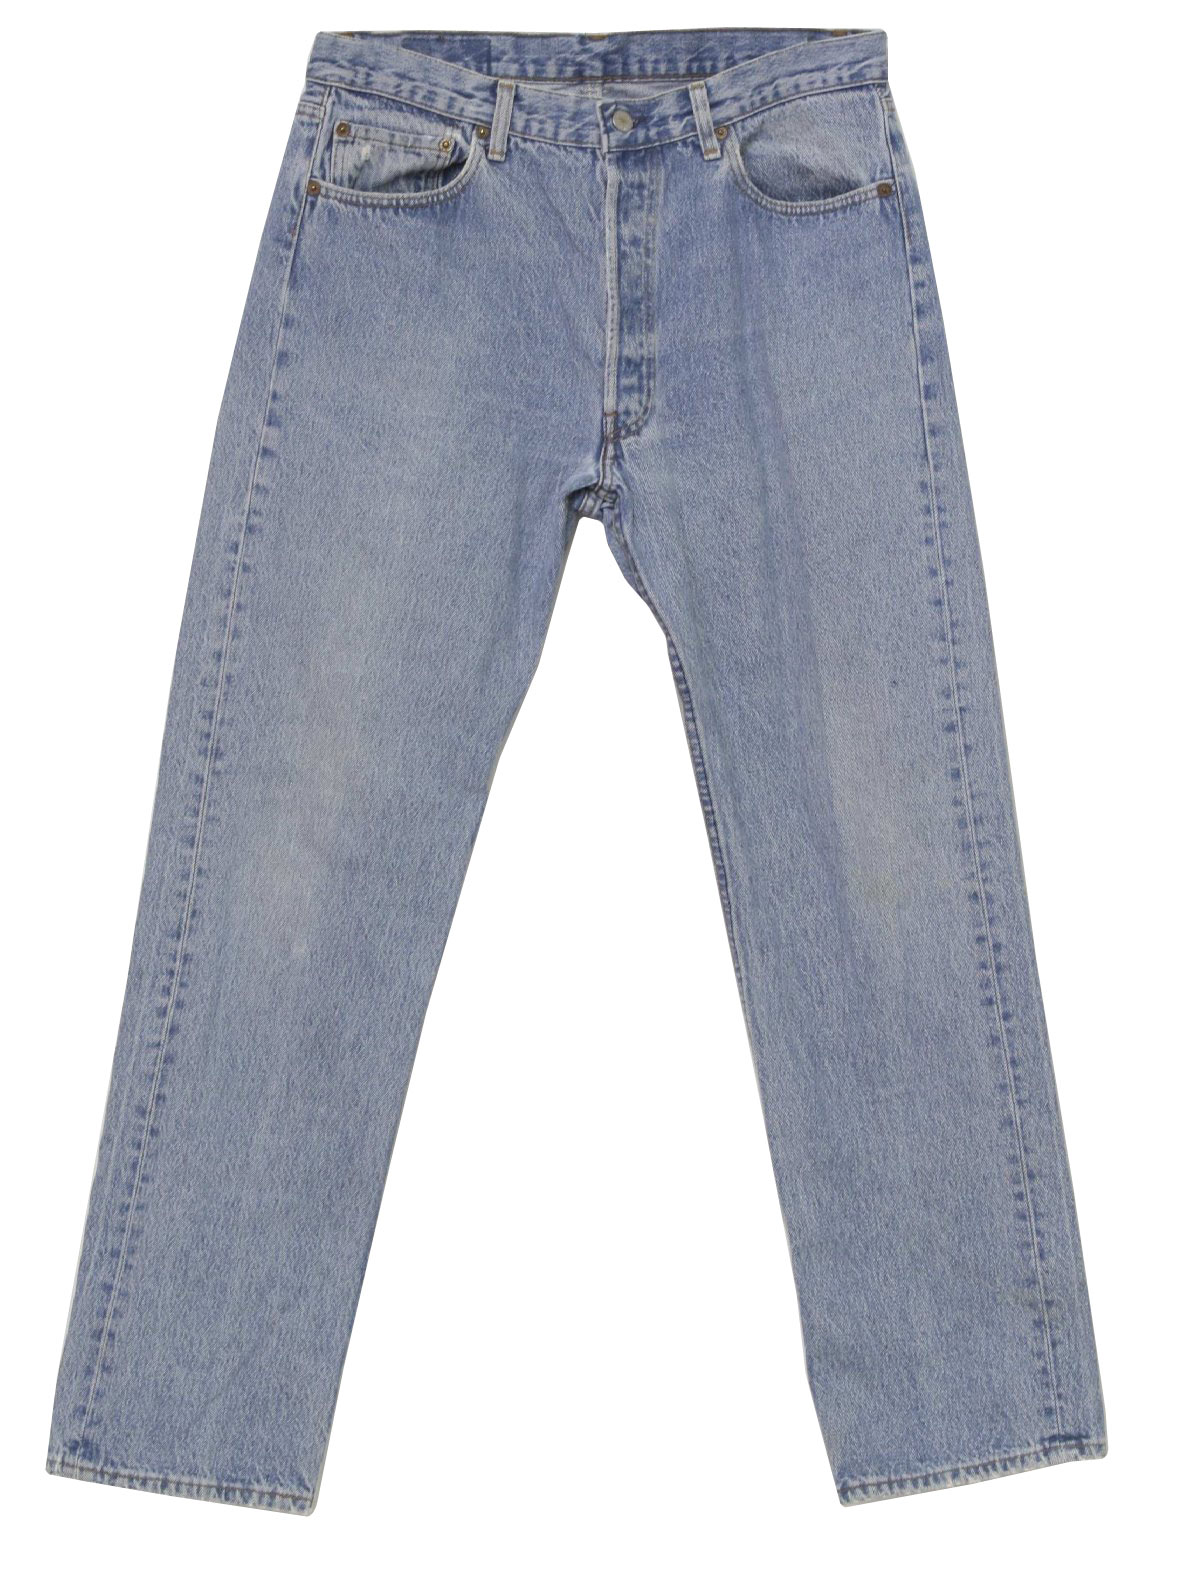 1594d9c3 1990's Vintage Levis 501 Pants: 90s -Levis 501- Mens light blue well ...